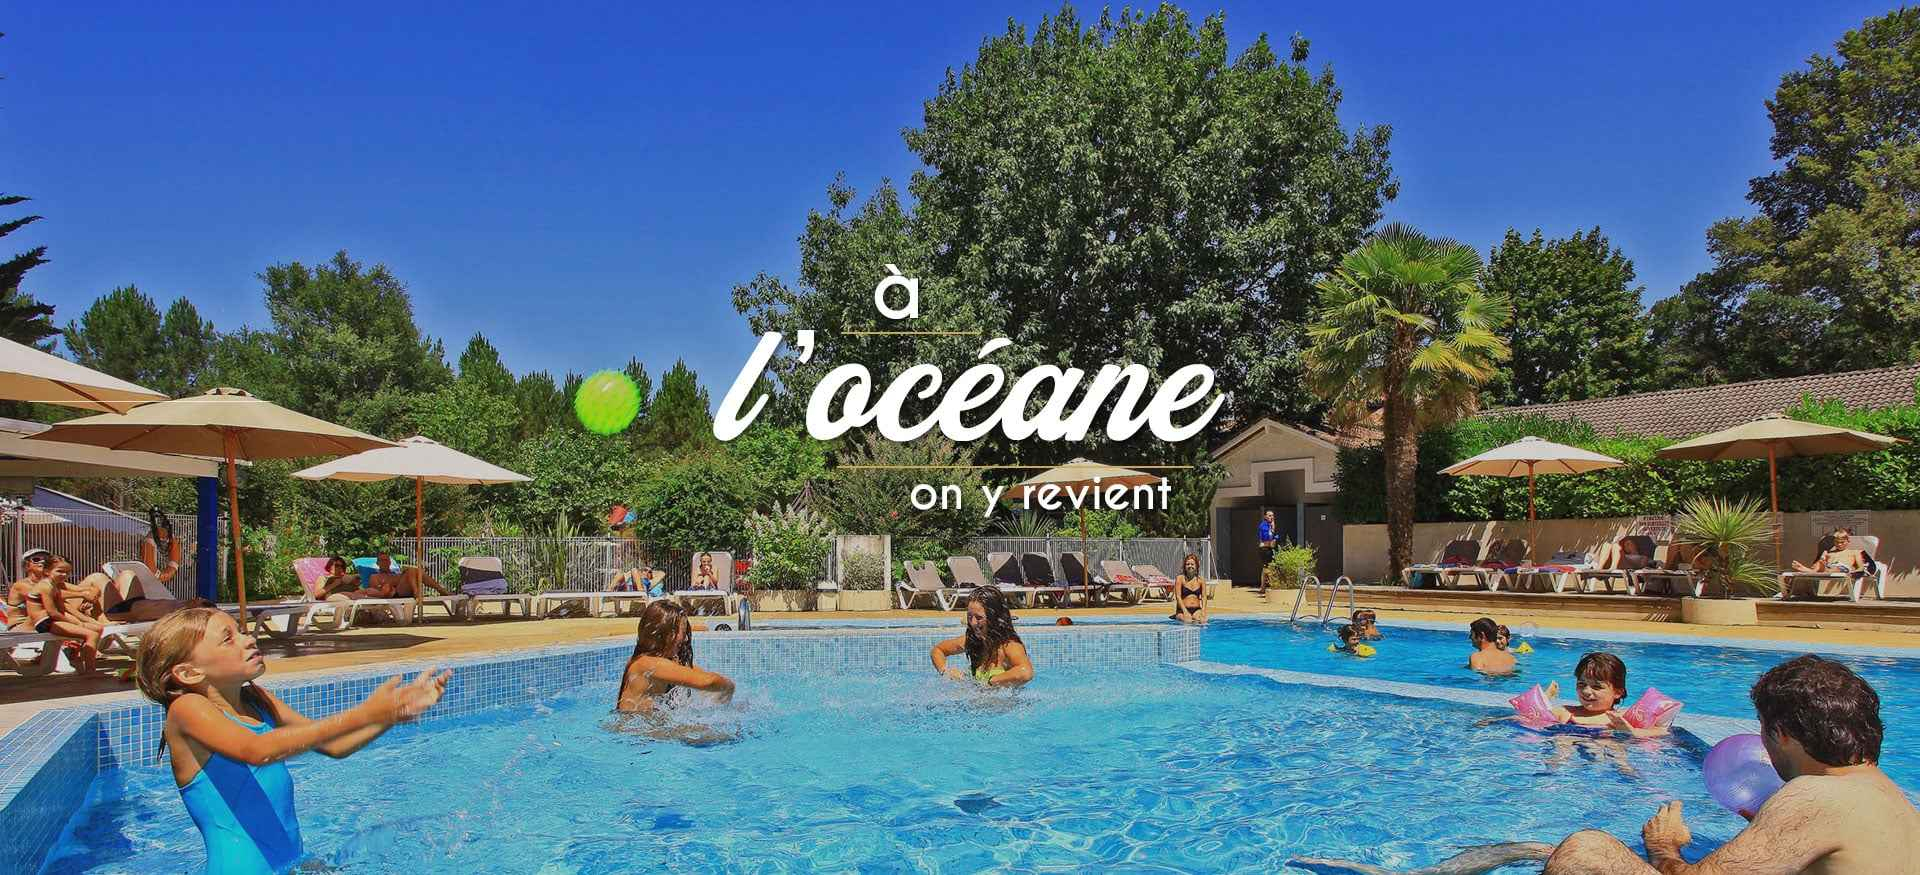 Camping Landes ****, Camping Familial Avec Piscine Chauffée ... avec Camping Mimizan Avec Piscine